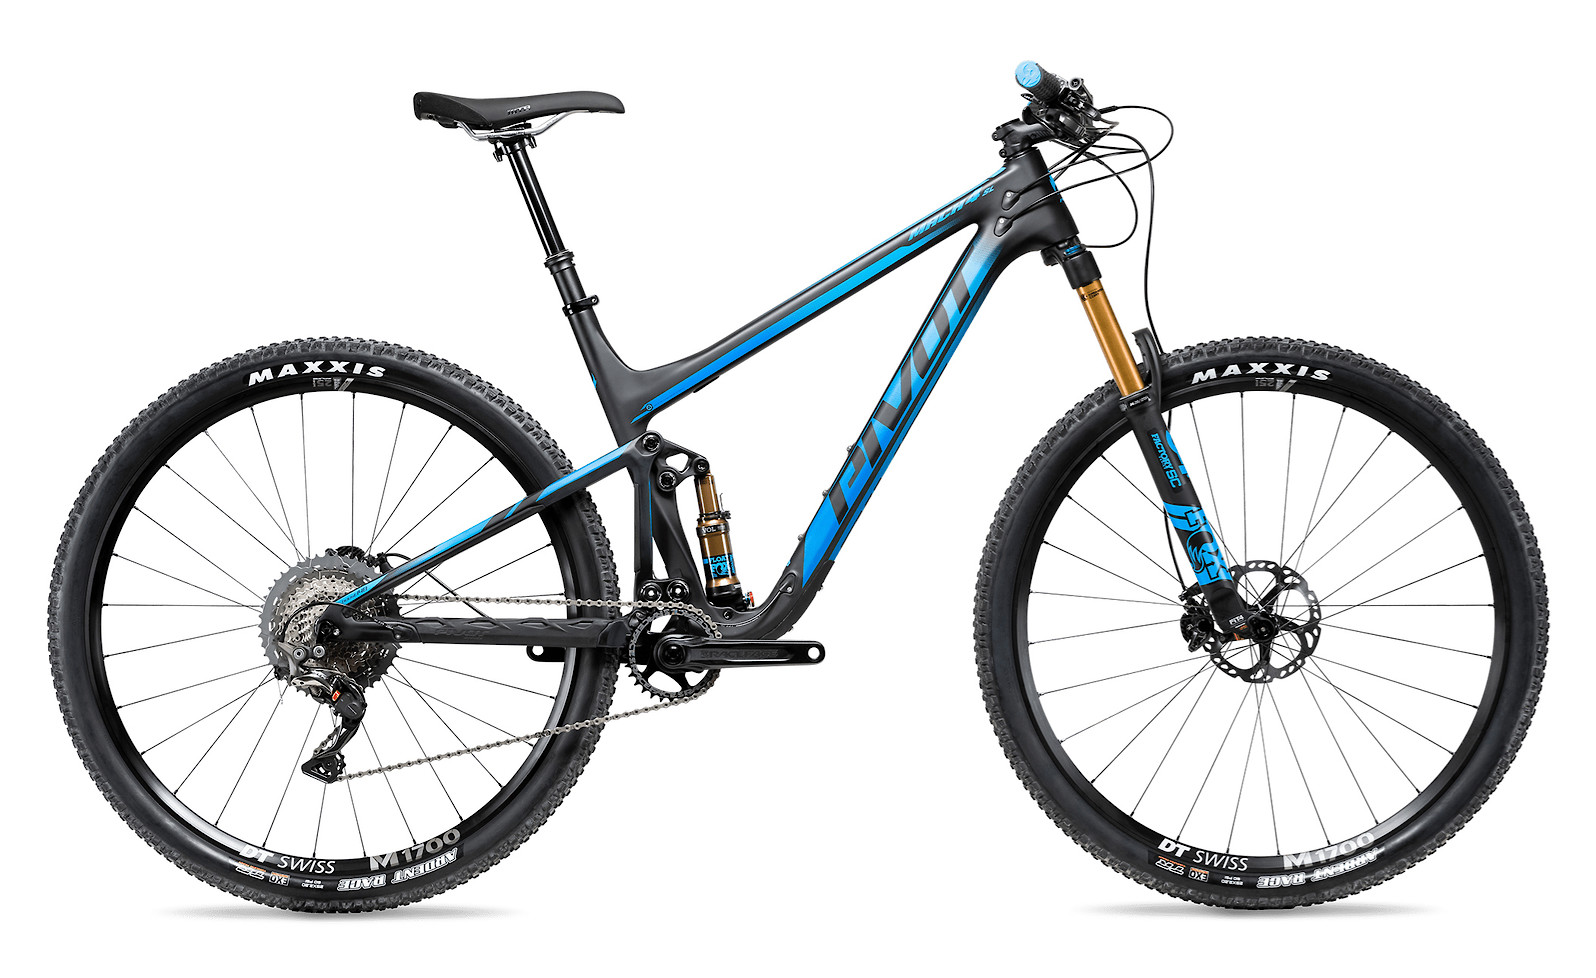 2020 Pivot Mach 4 SL in Team Blue (Pro XT/XTR model pictured)